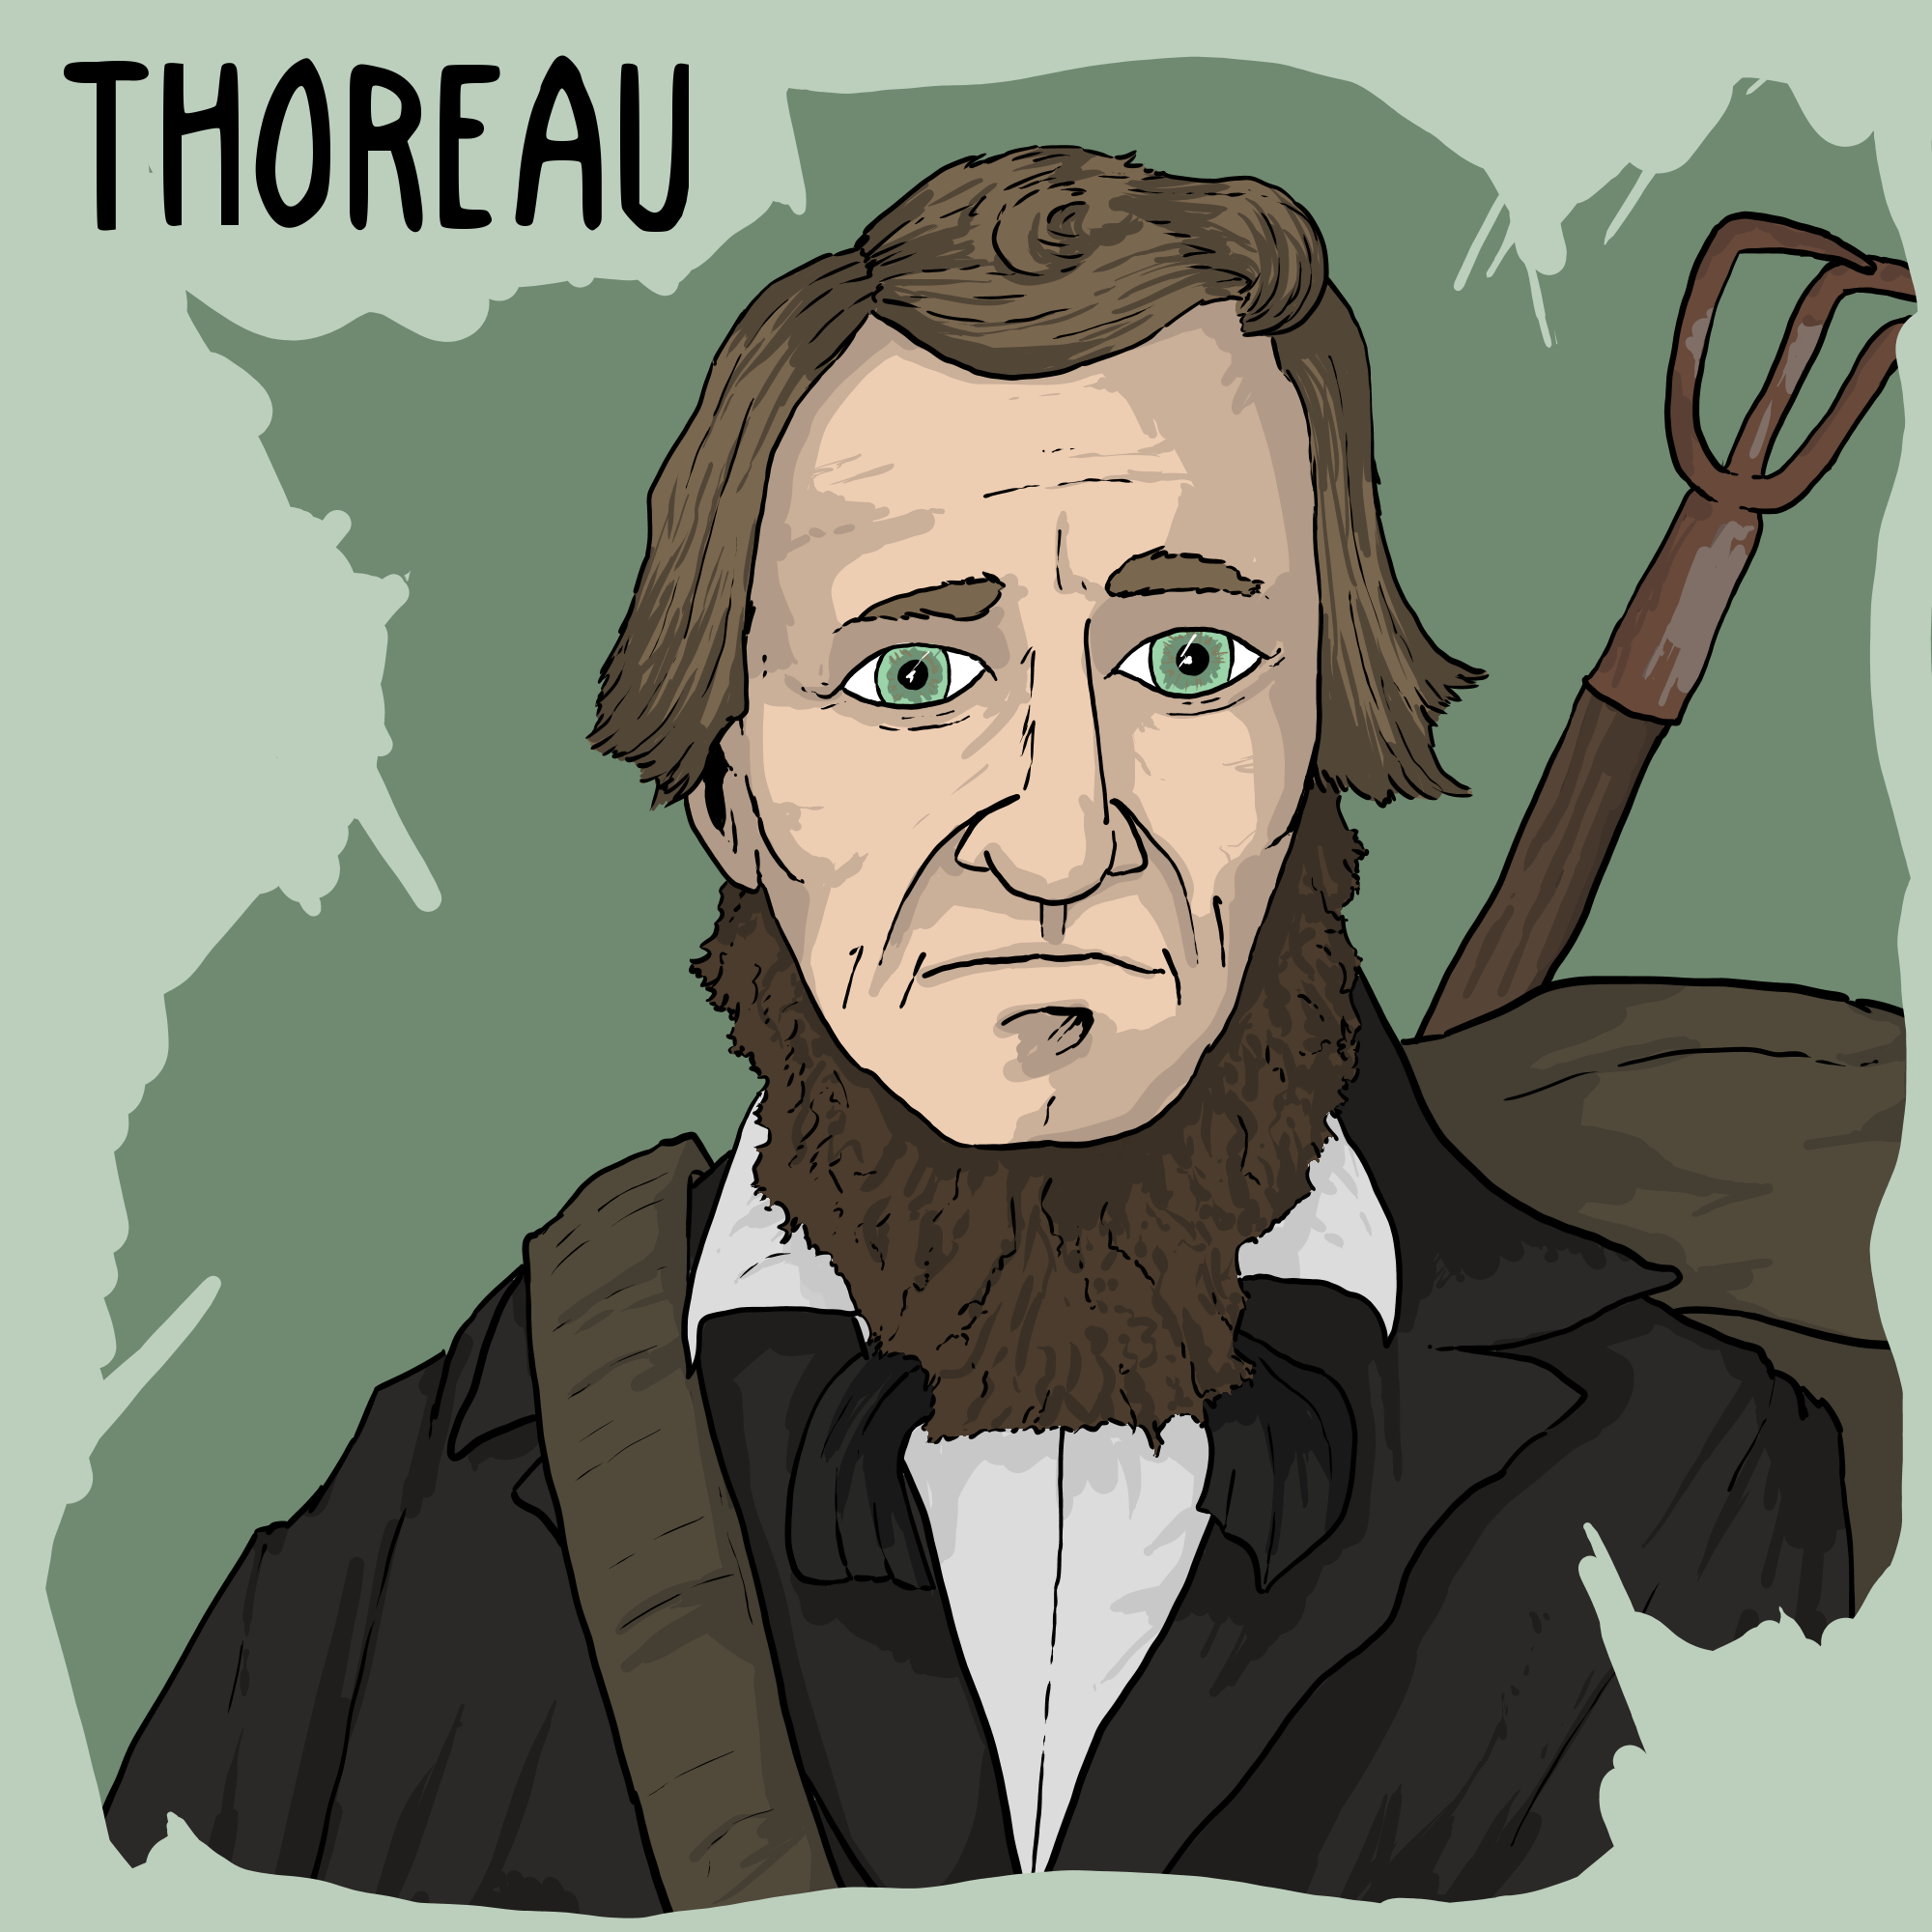 an introduction to the philosophy on the topic of the government by thoreau Henry david thoreau's biography and life storyhenry david thoreau  thoreau's philosophy of  he read avidly on botany and often wrote observations on this topic.